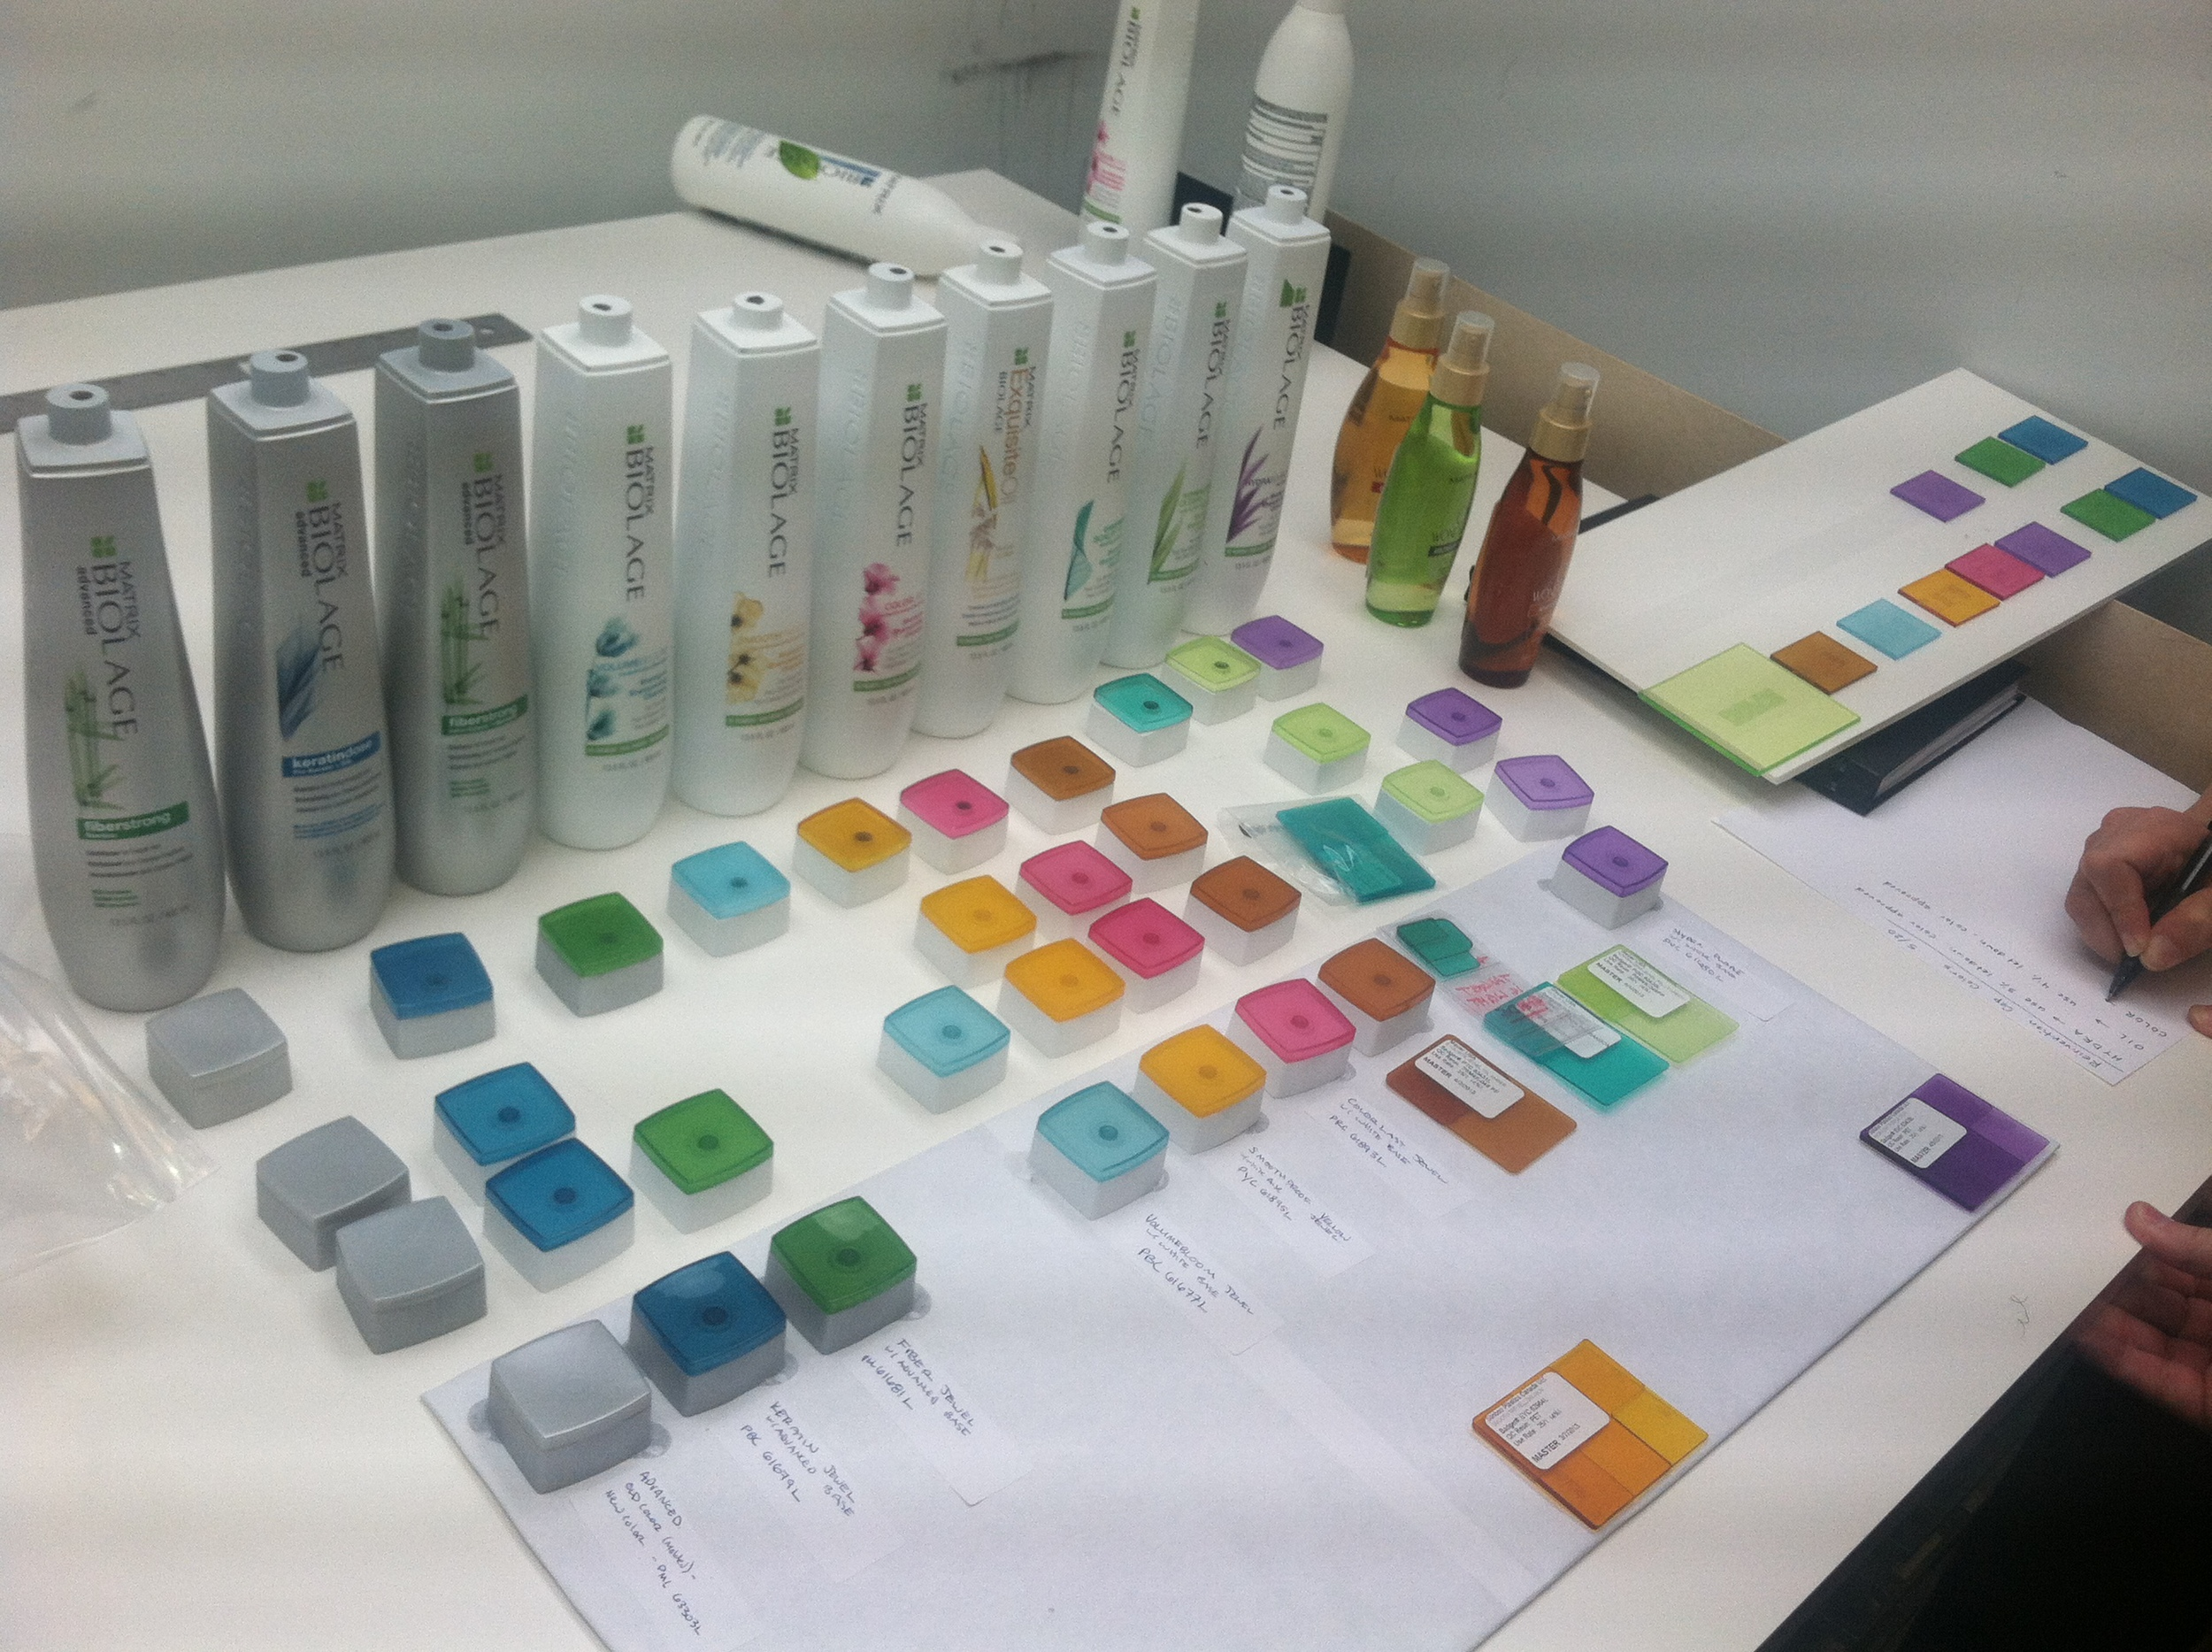 Color-matching caps and bottlesfor the full range of shampoos and conditioners